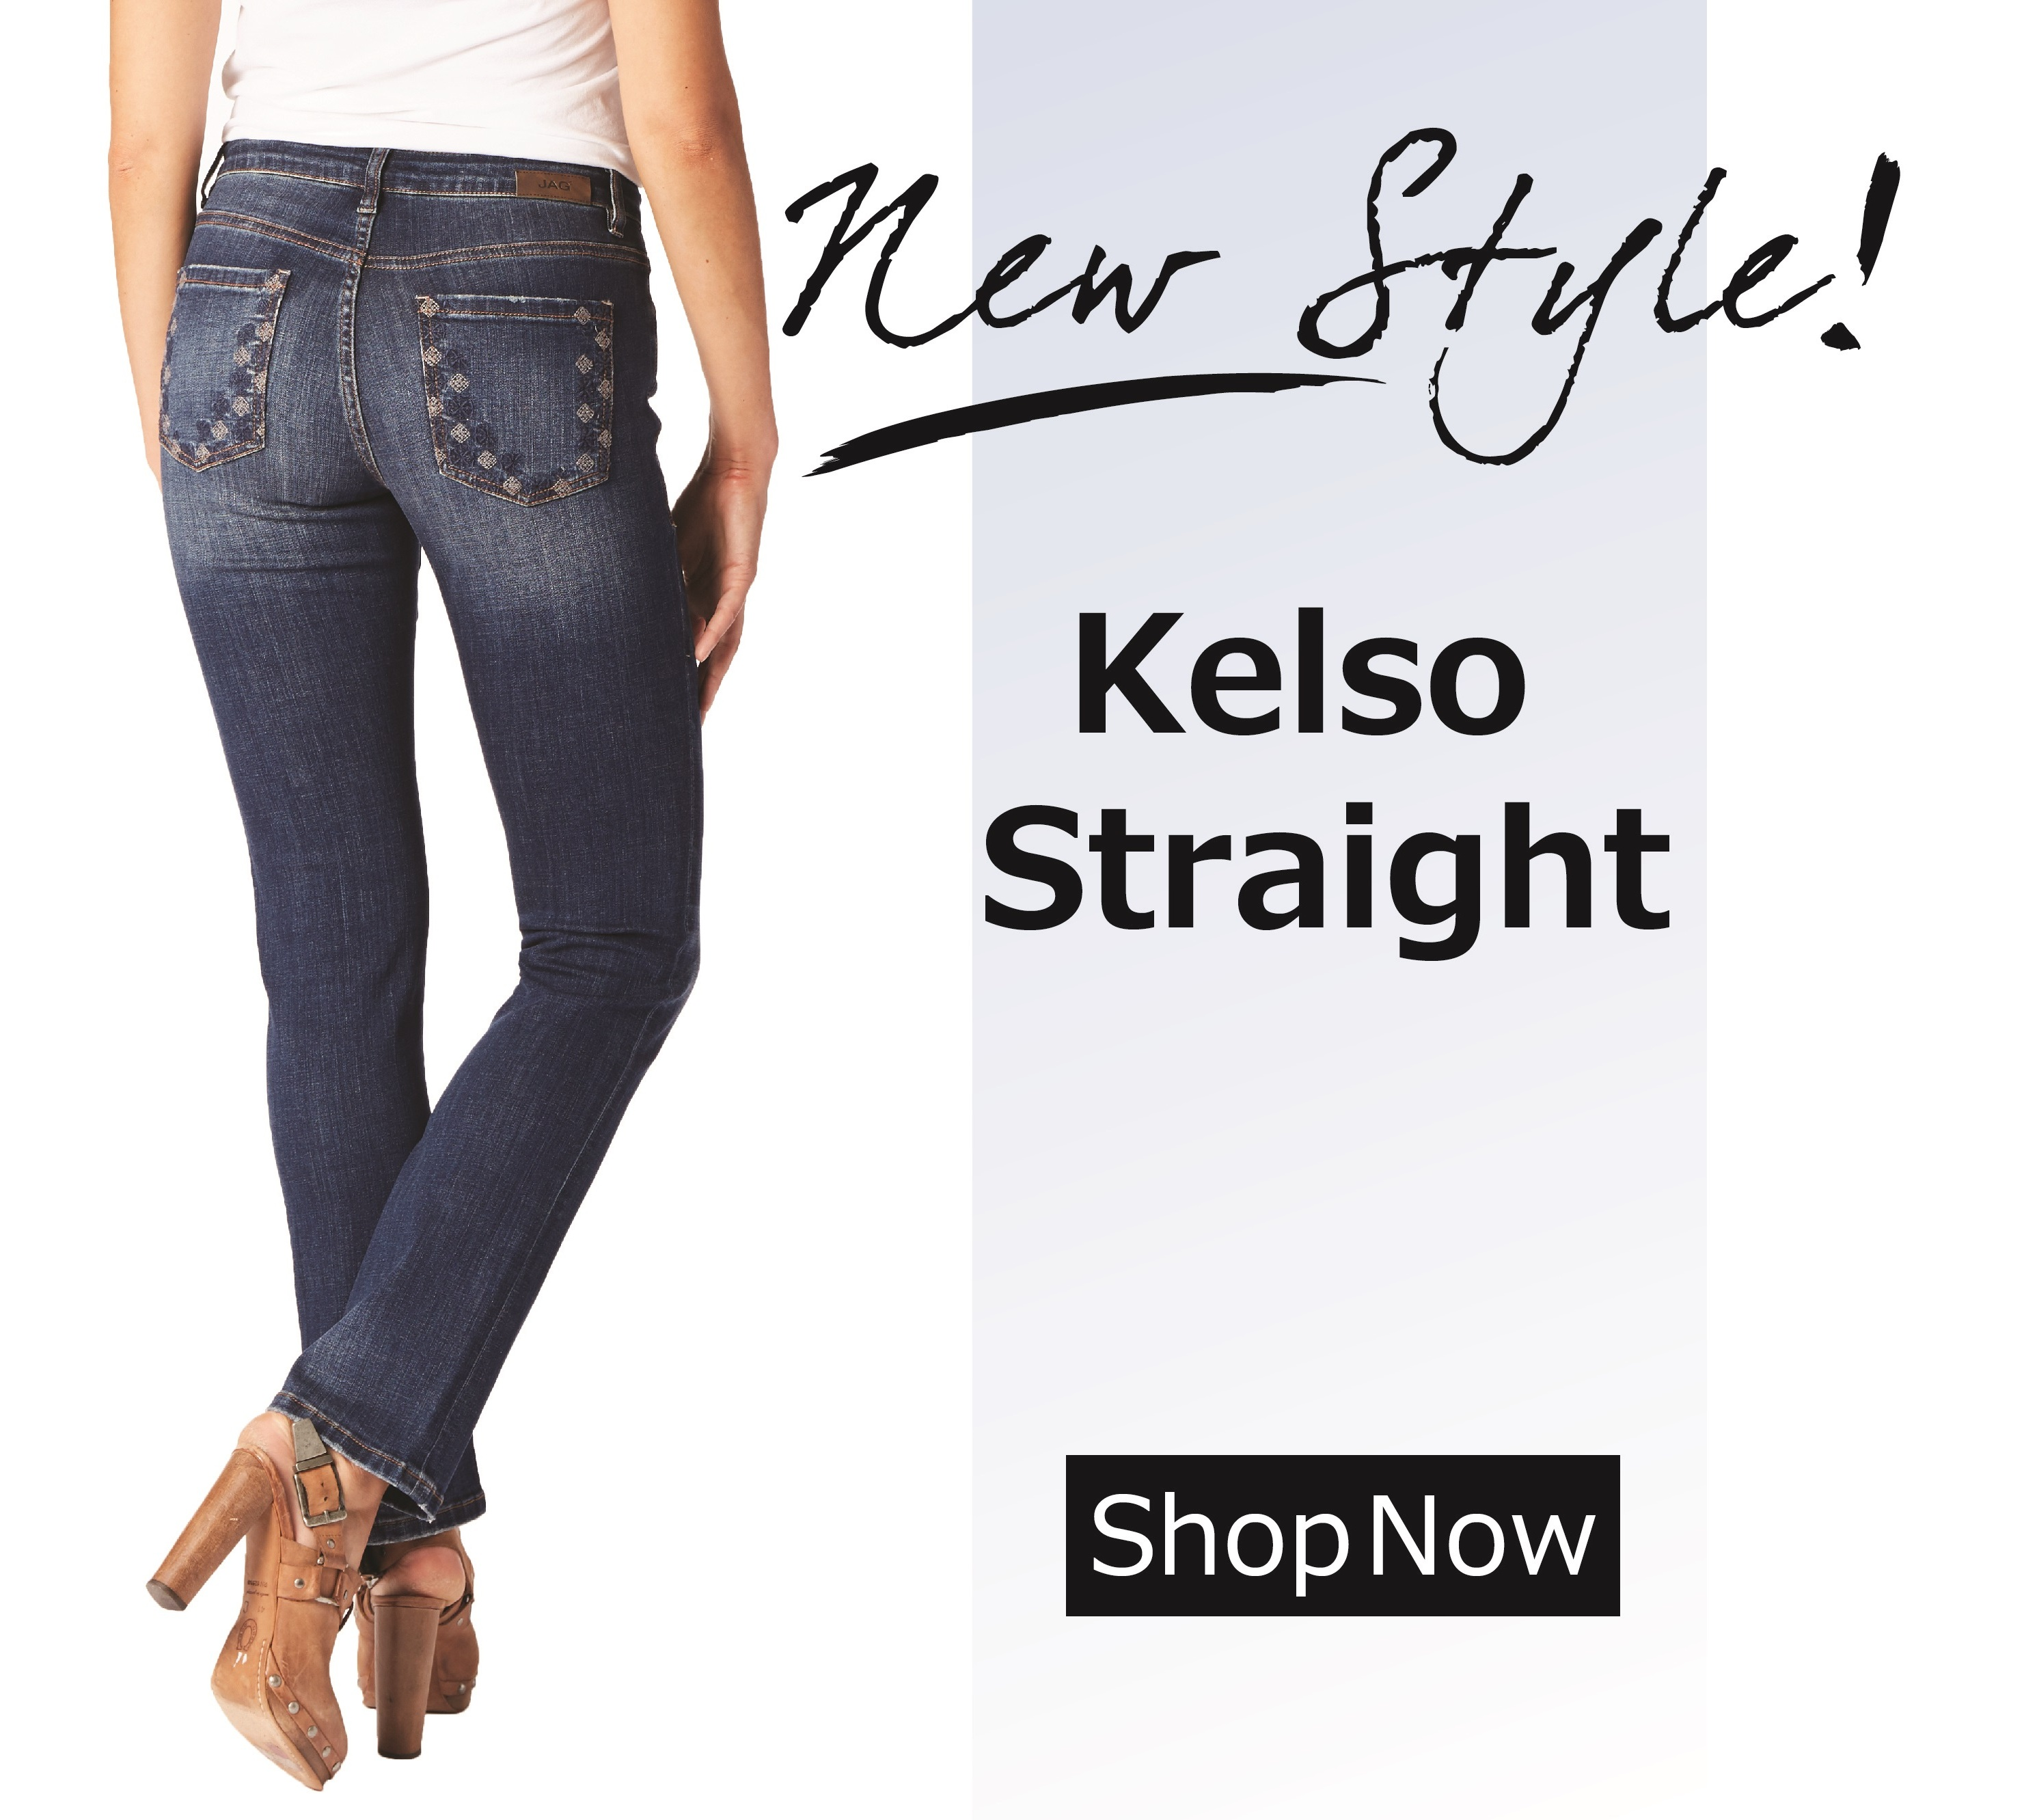 New Style | Kelso Straight